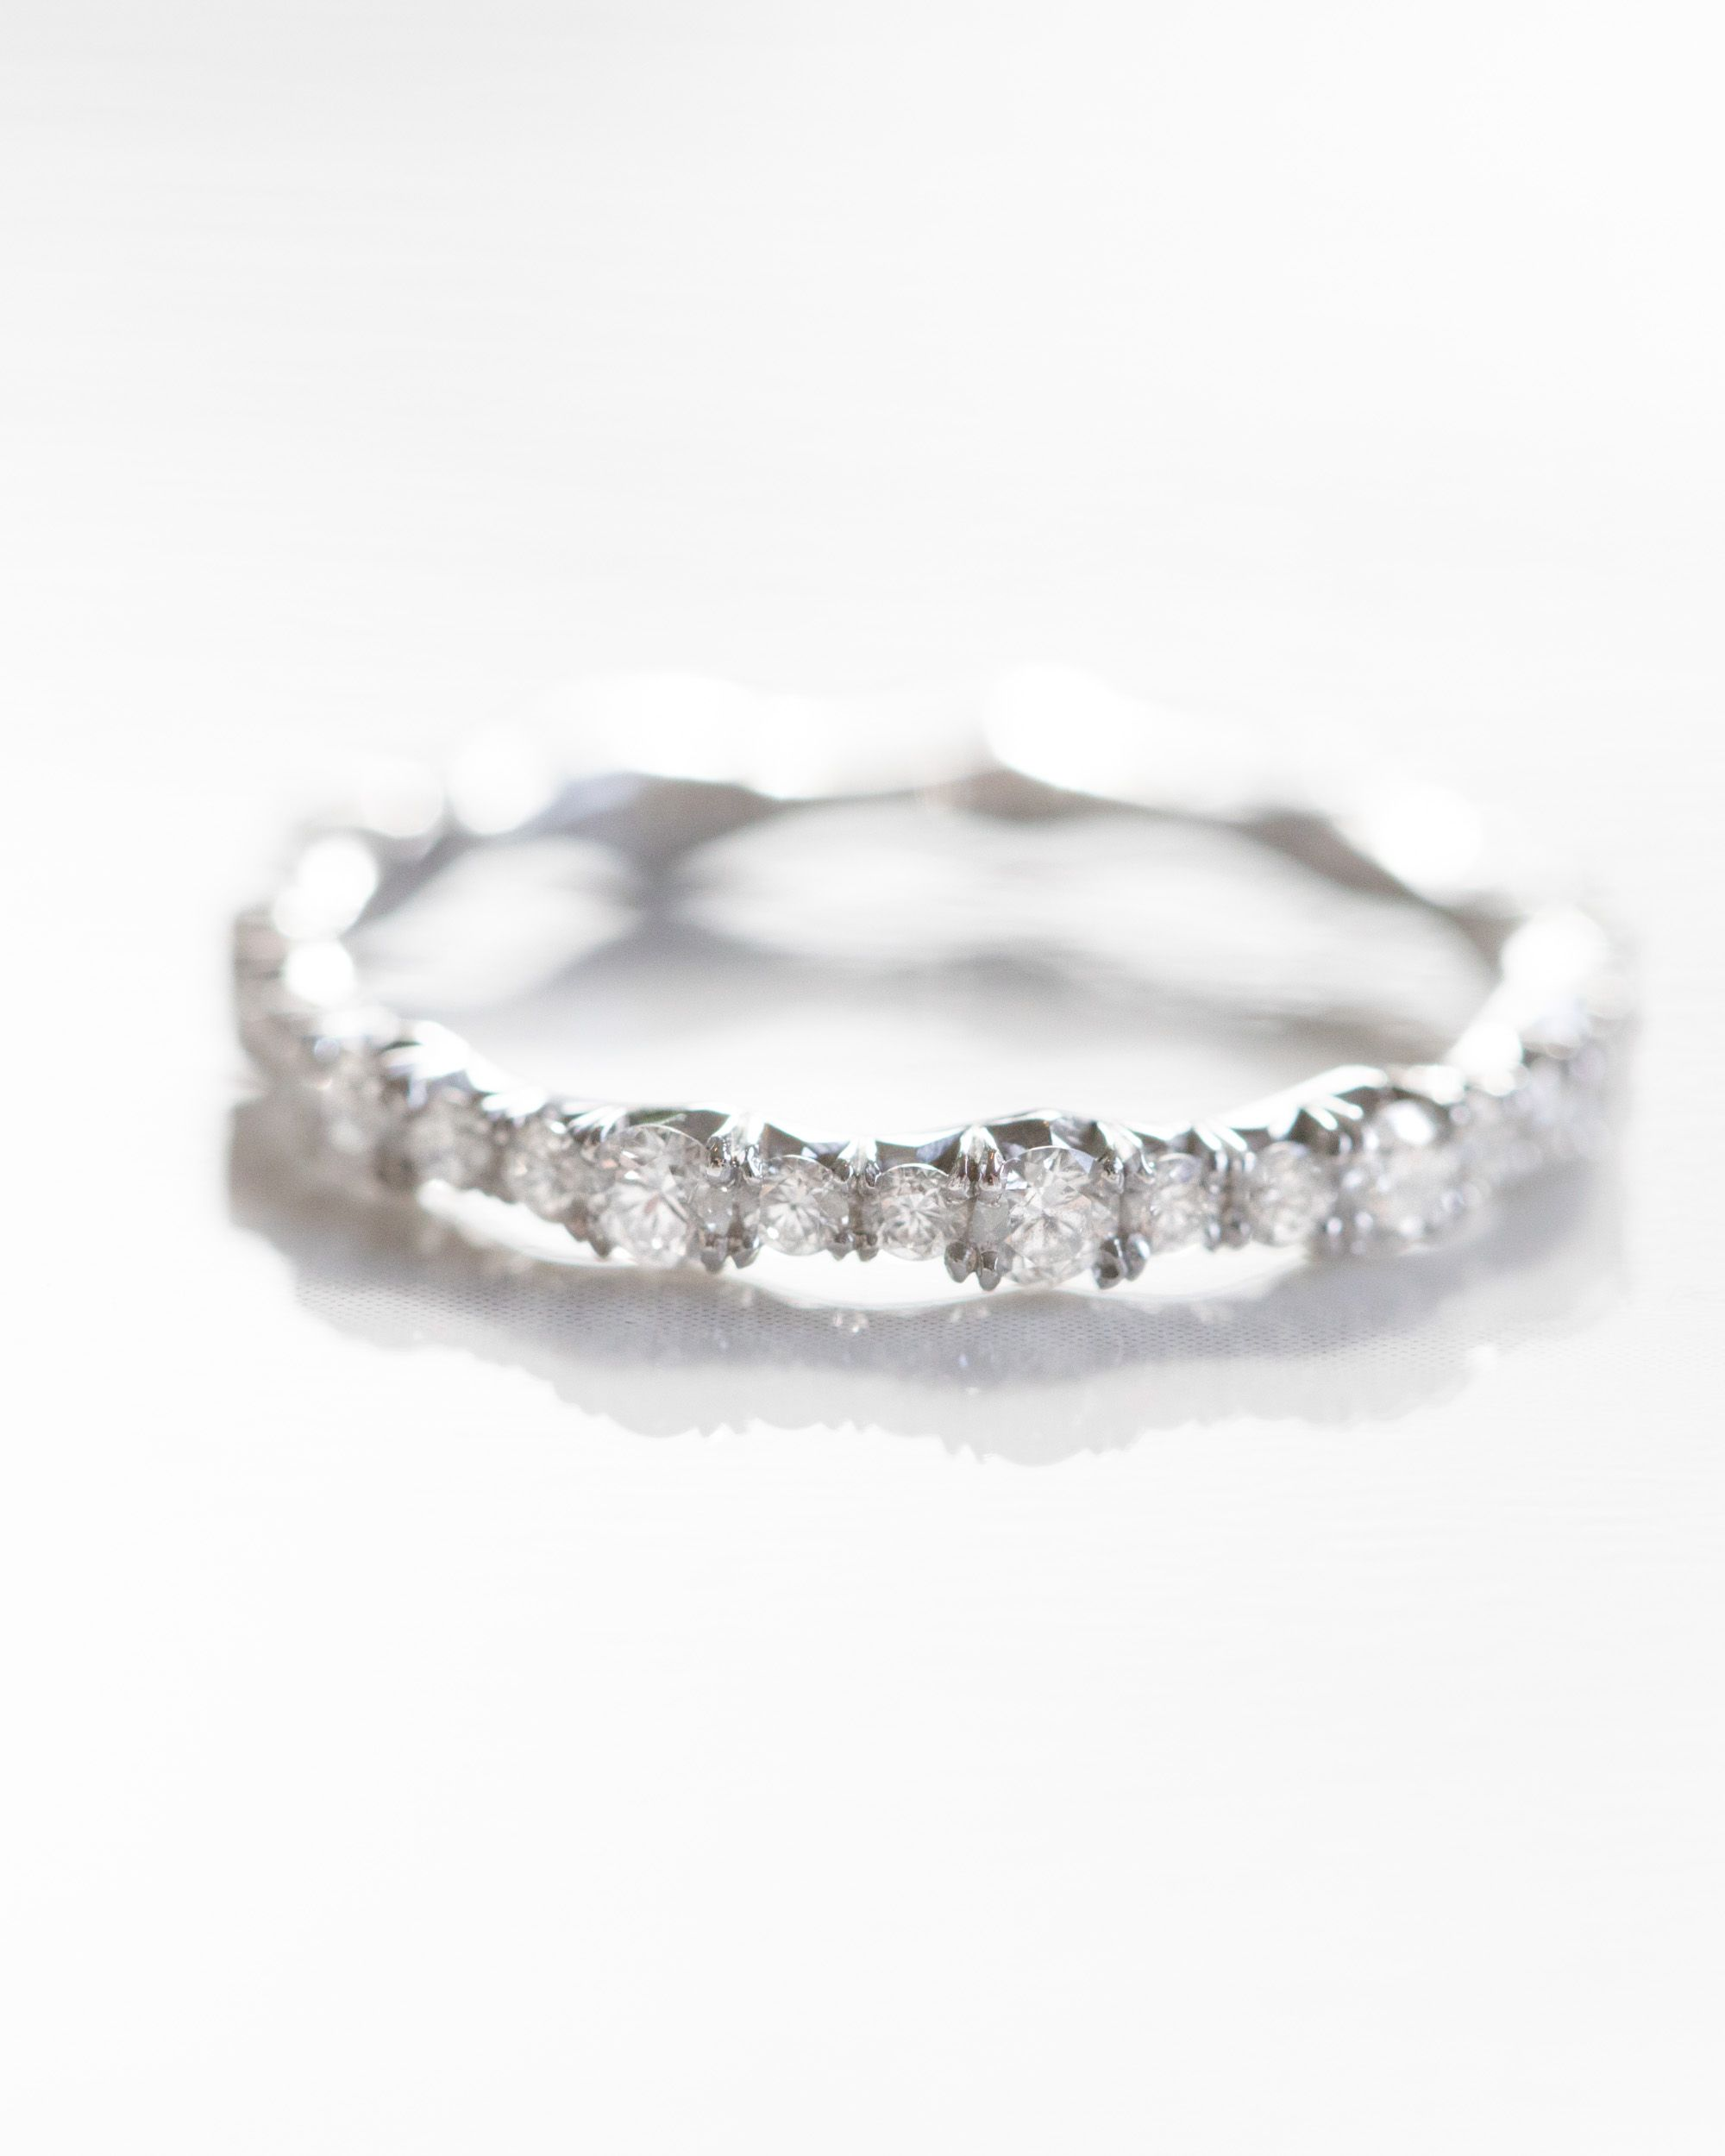 This Ring Features Round Diamonds Of Graduated Sizes Arranged To Emulate A Wave Pattern The French Pave Setting Adds More Visual Intrigue Overall: Wave Pattern Wedding Ring I Do At Websimilar.org